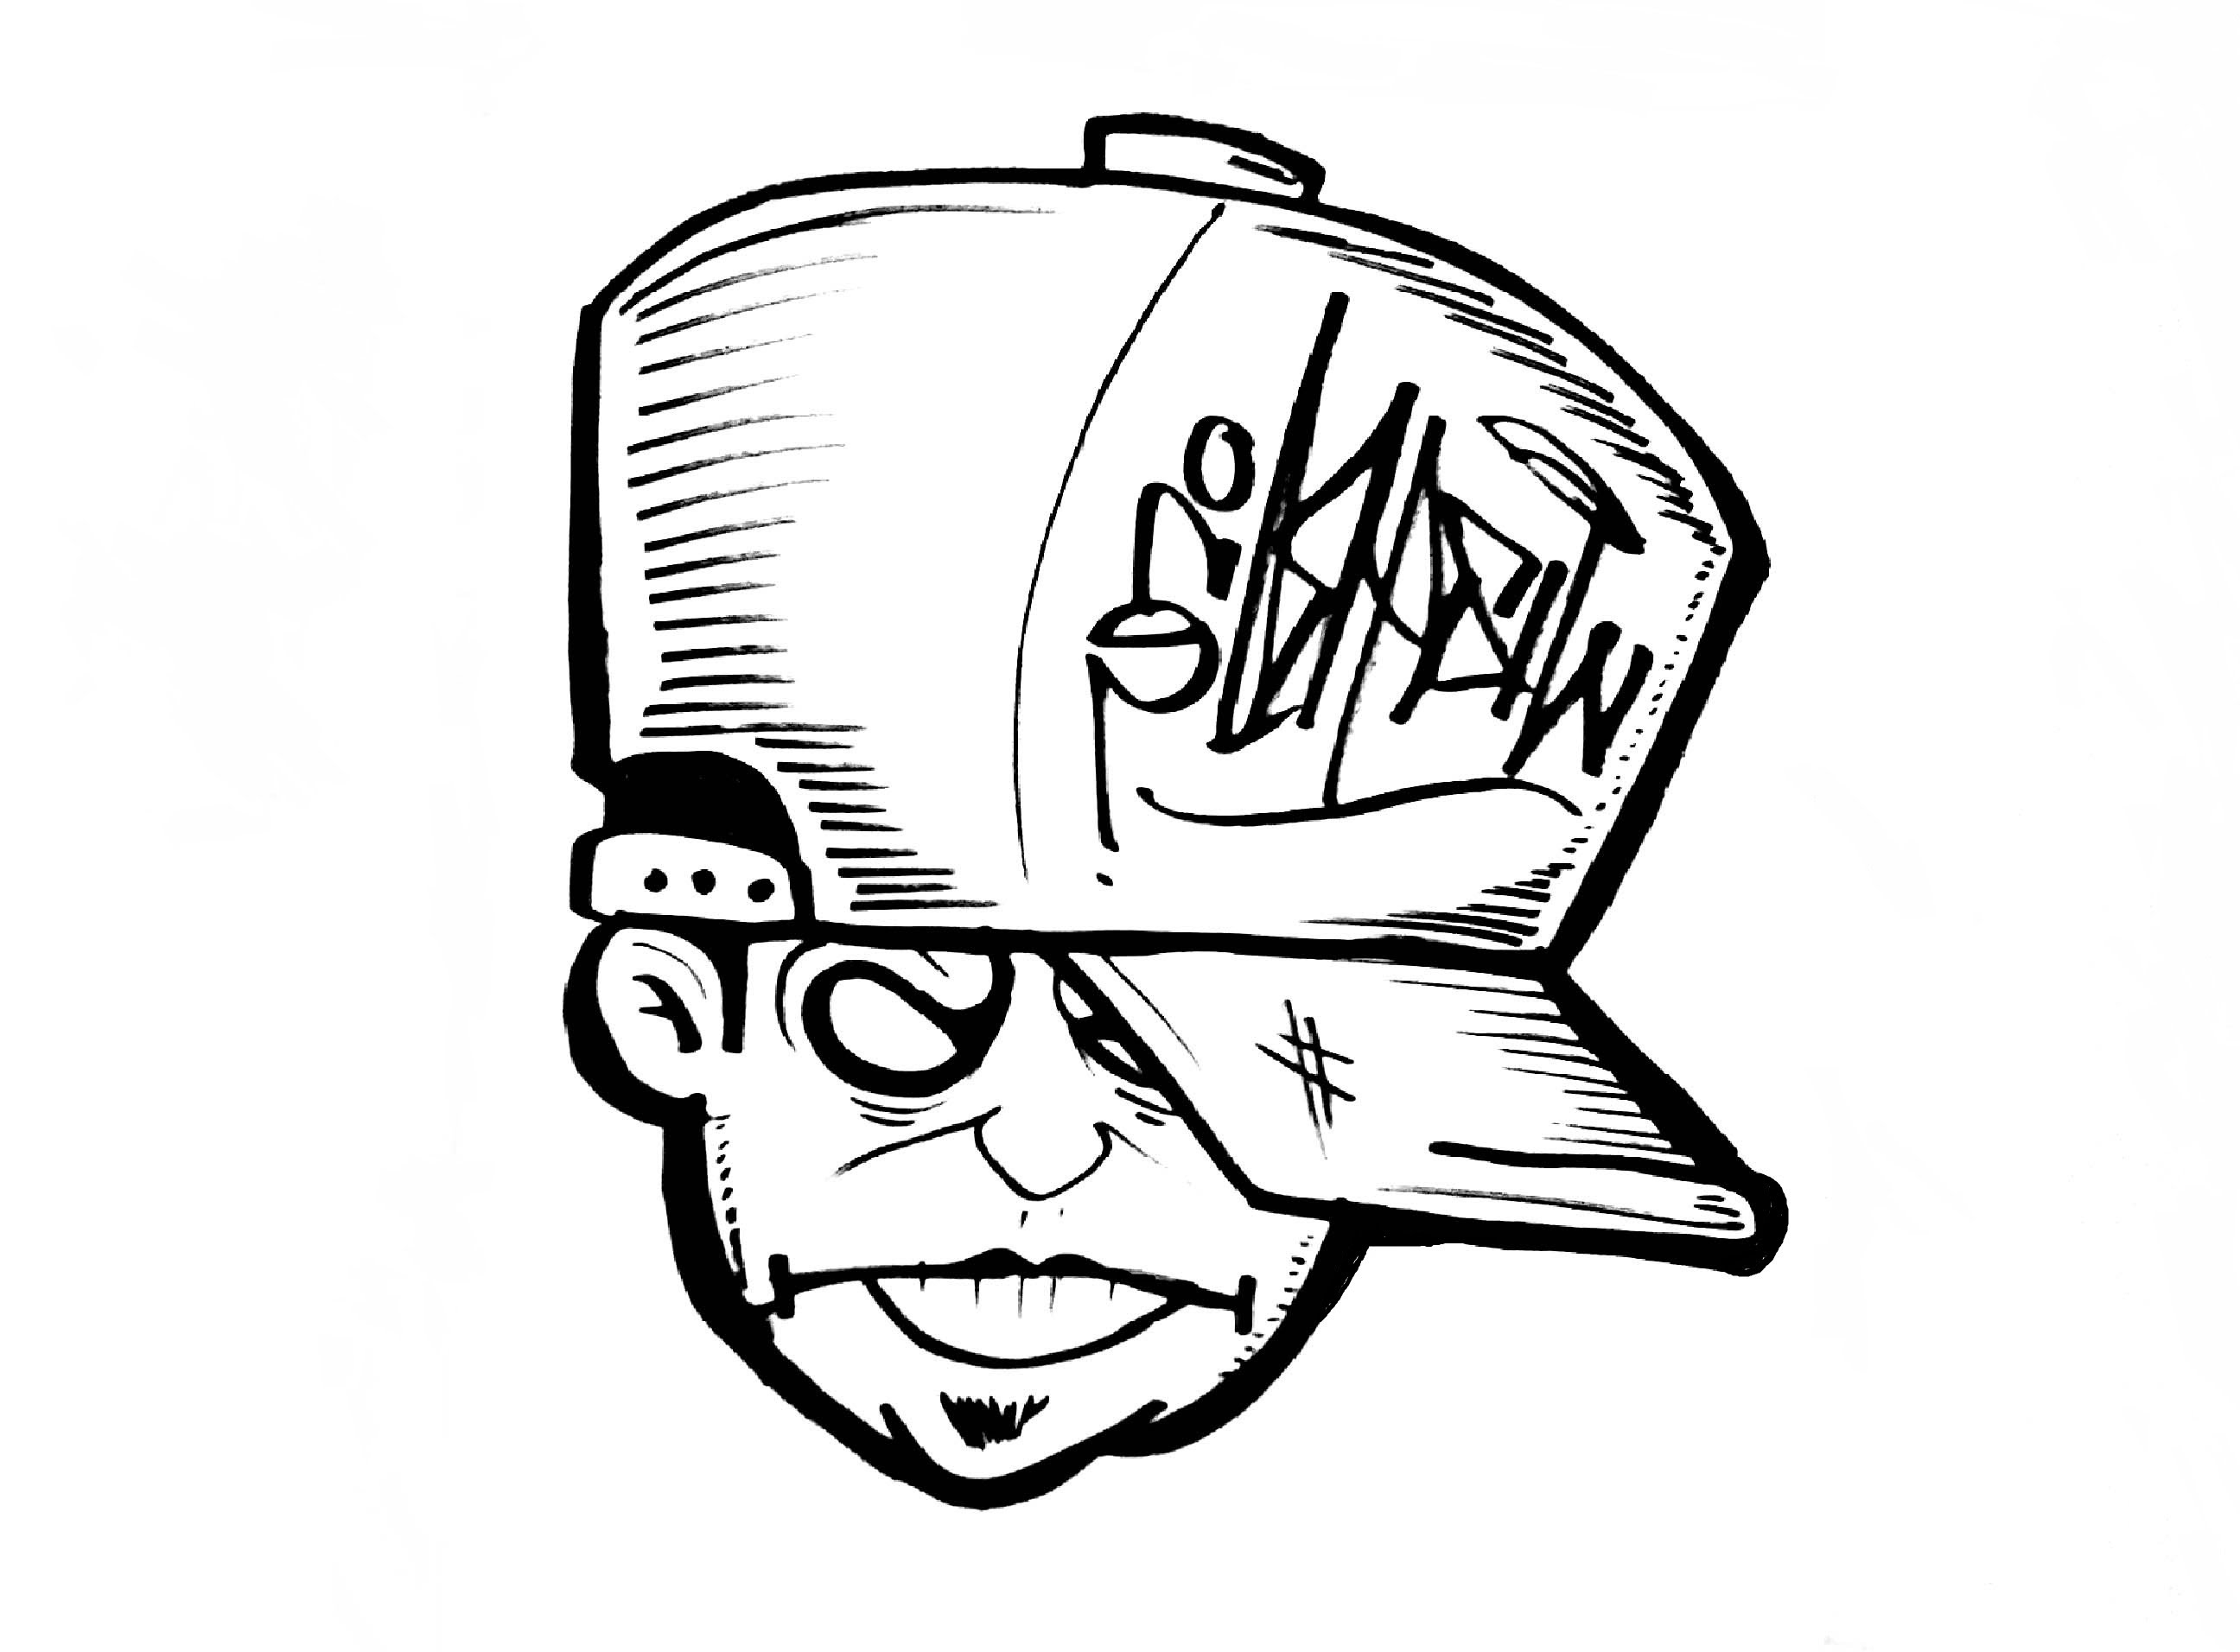 2592x1912 Graffiti Character Cte Monster Sketch How To Draw Face (Graffiti